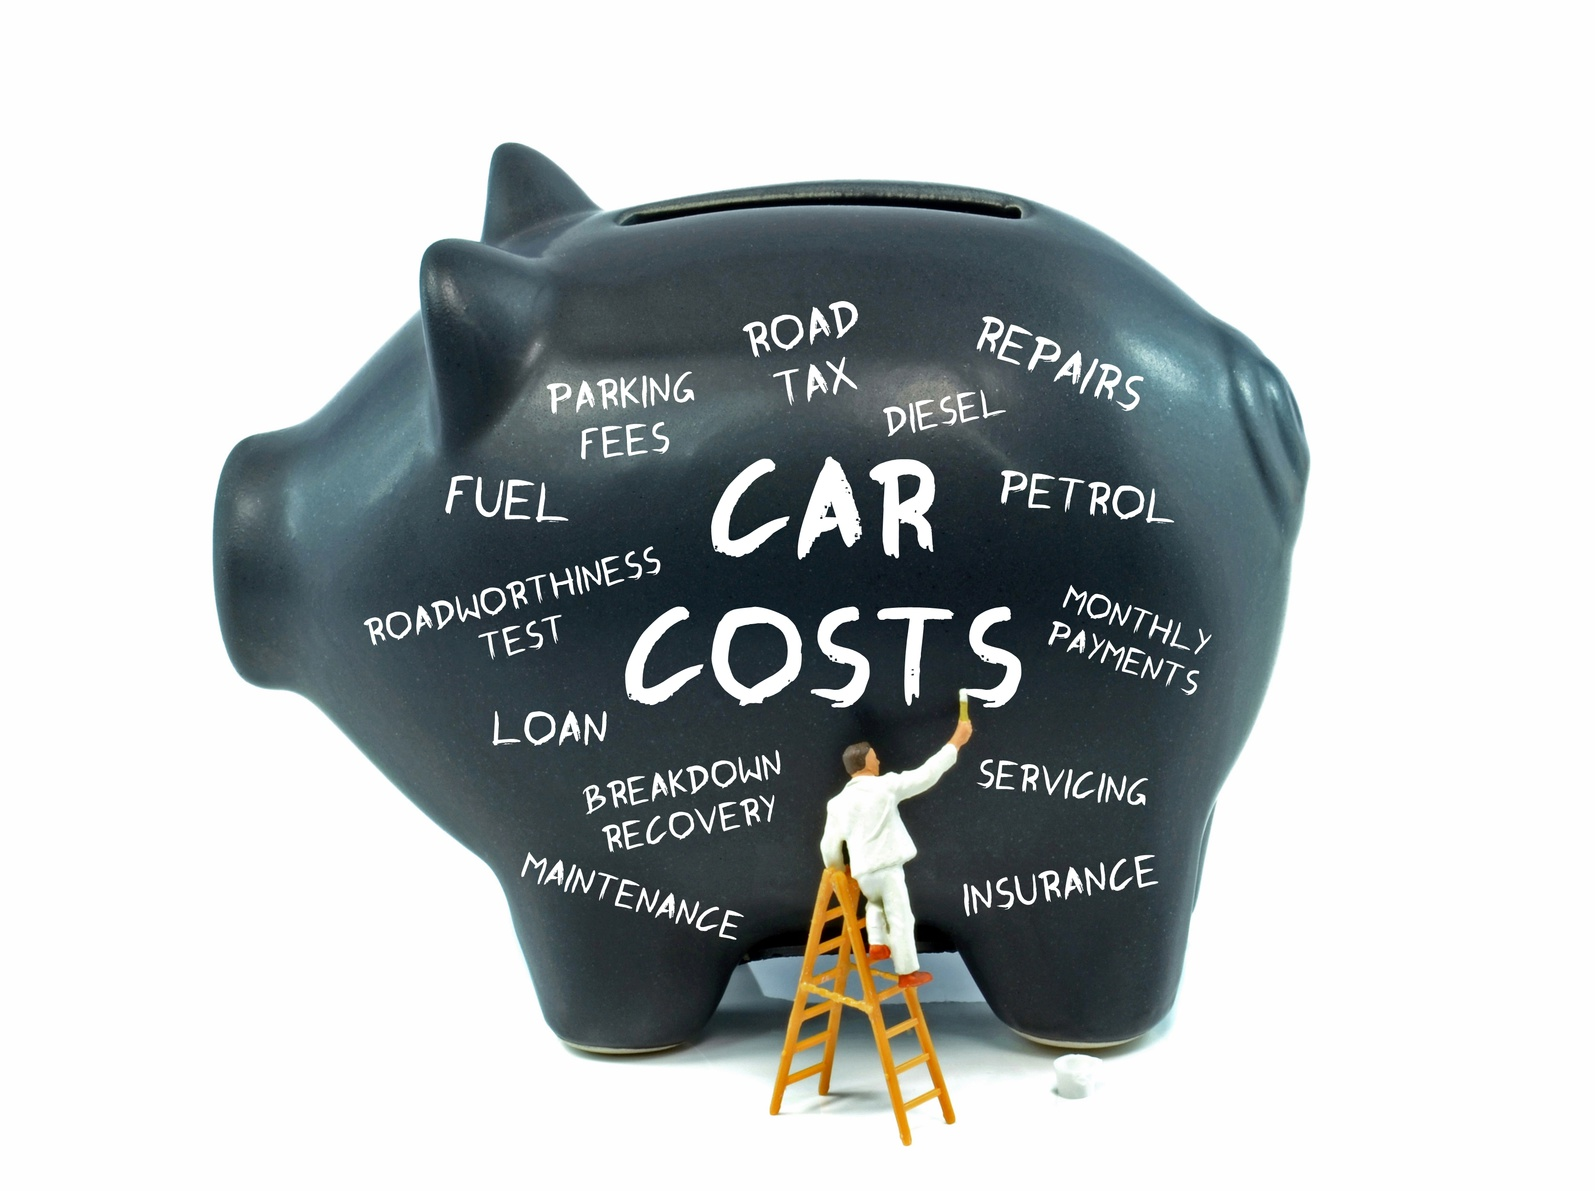 Paying Ahead On Car Loan